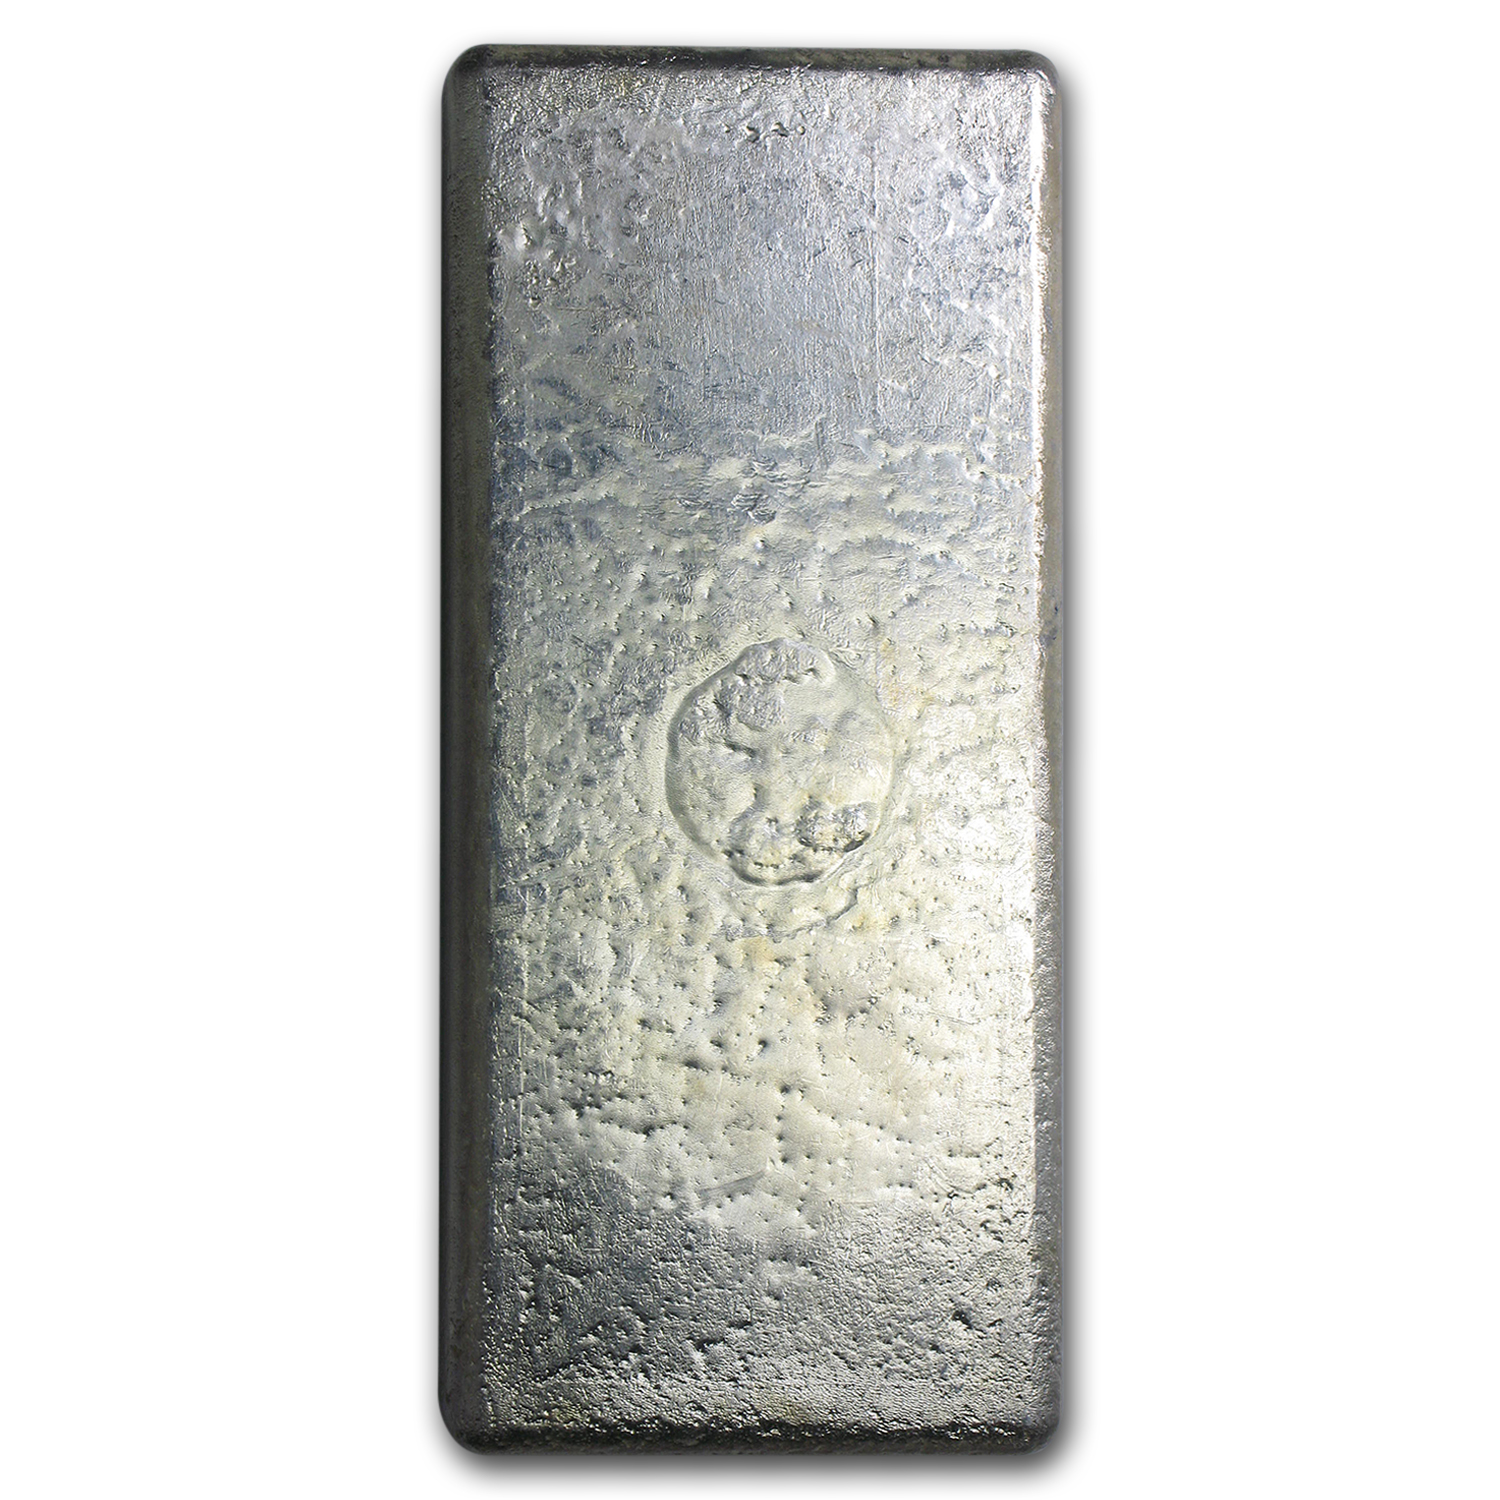 20 oz Silver Bars - Johnson Matthey (Vintage/Canada)